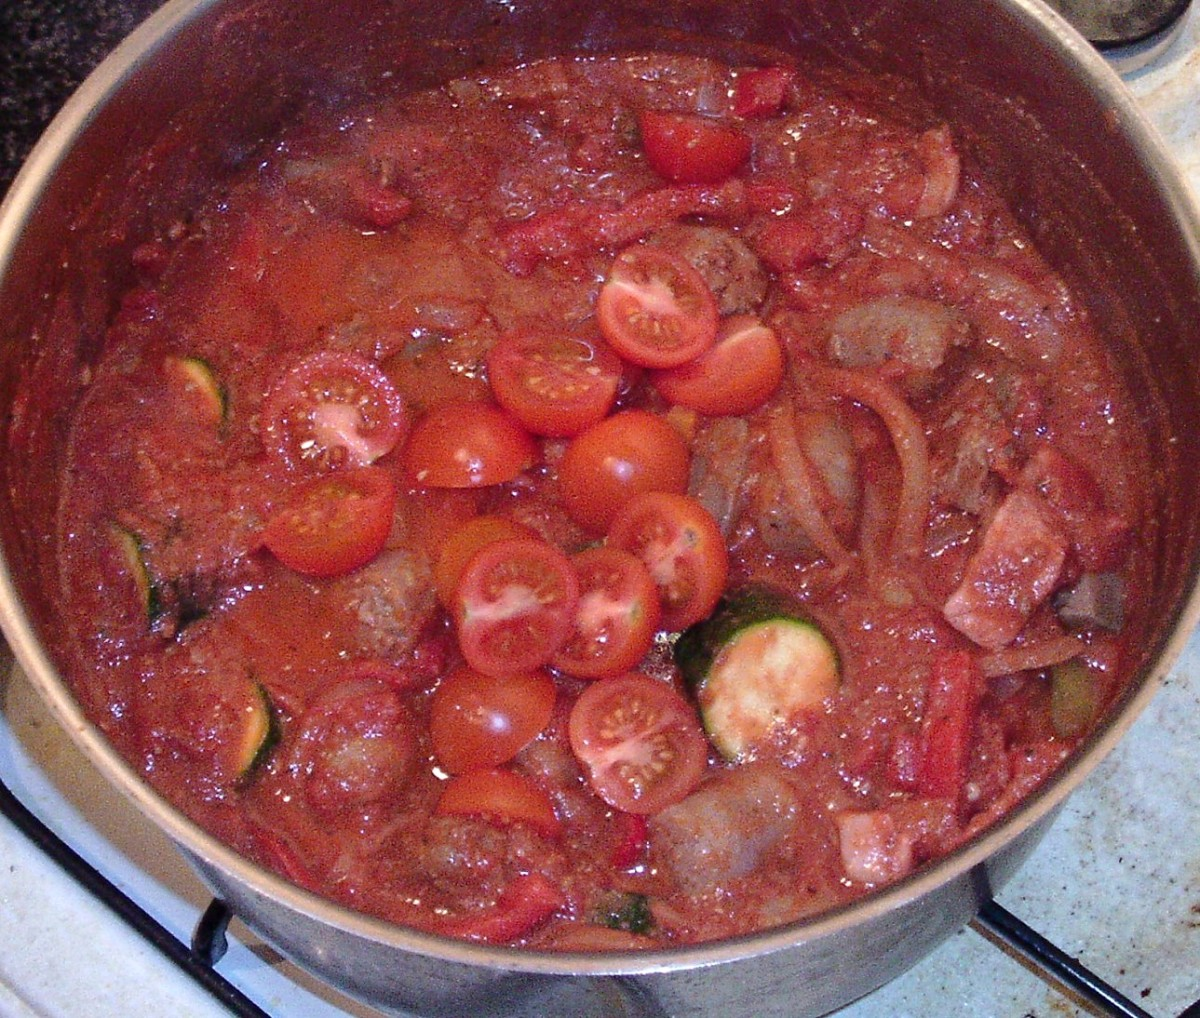 Halved cherry tomatoes are added to stew half way through cooking